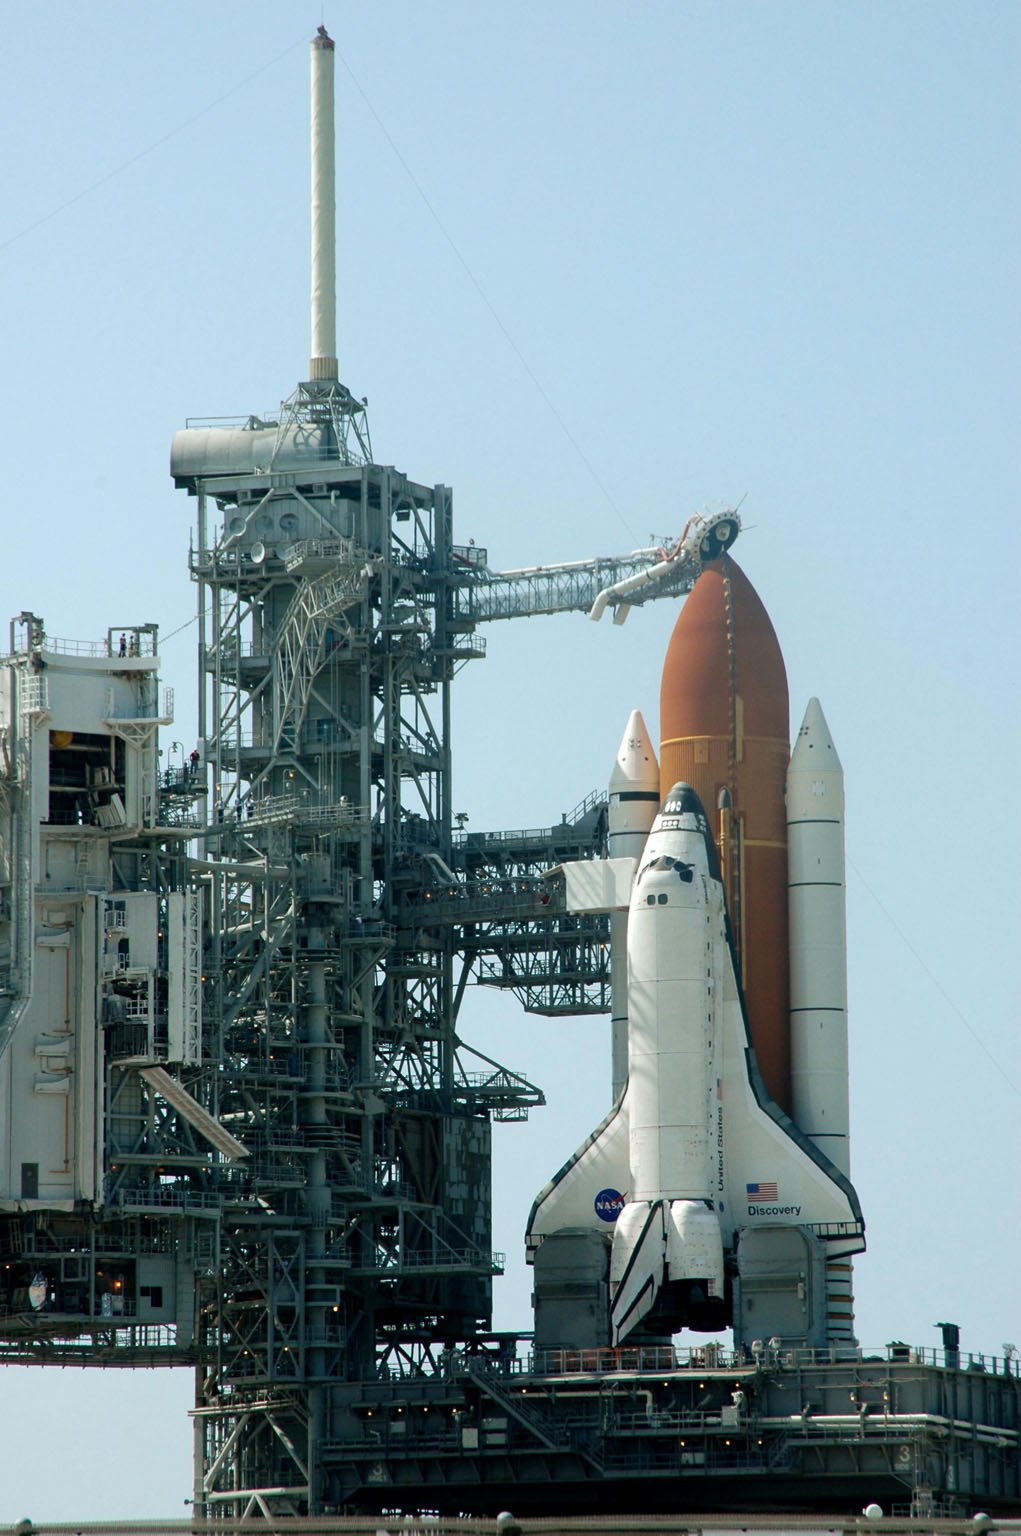 KENNEDY SPACE CENTER, FLA. - Space Shuttle Discovery in full launch configuration is revealed after the Rotating Service Structure (RSS) is rotated back at Launch Pad 39B at NASA Kennedy Space Center. The gaseous oxygen vent arm (beanie cap) has been extended to the top of the External Tank. Rollback of the RSS is a major preflight milestone, typically occurring during the T-11-hour hold on L-1 (the day before launch). Discovery is scheduled to lift off on the historic Return to Flight mission STS-114 at 10:39 a.m. EDT July 26 with a crew of seven. On the mission to the International Space Station the crew will perform inspections on orbit for the first time of all of the Reinforced Carbon-Carbon (RCC) panels on the leading edge of the wings and the Thermal Protection System tiles using the new Canadian-built Orbiter Boom Sensor System and the data from 176 impact and temperature sensors. Mission Specialists will also practice repair techniques on RCC and tile samples during a spacewalk in the payload bay. During two additional spacewalks, the crew will install the External Stowage Platform-2, equipped with spare part assemblies, and a replacement Control Moment Gyroscope contained in the Lightweight Multi-Purpose Experiment Support Structure.